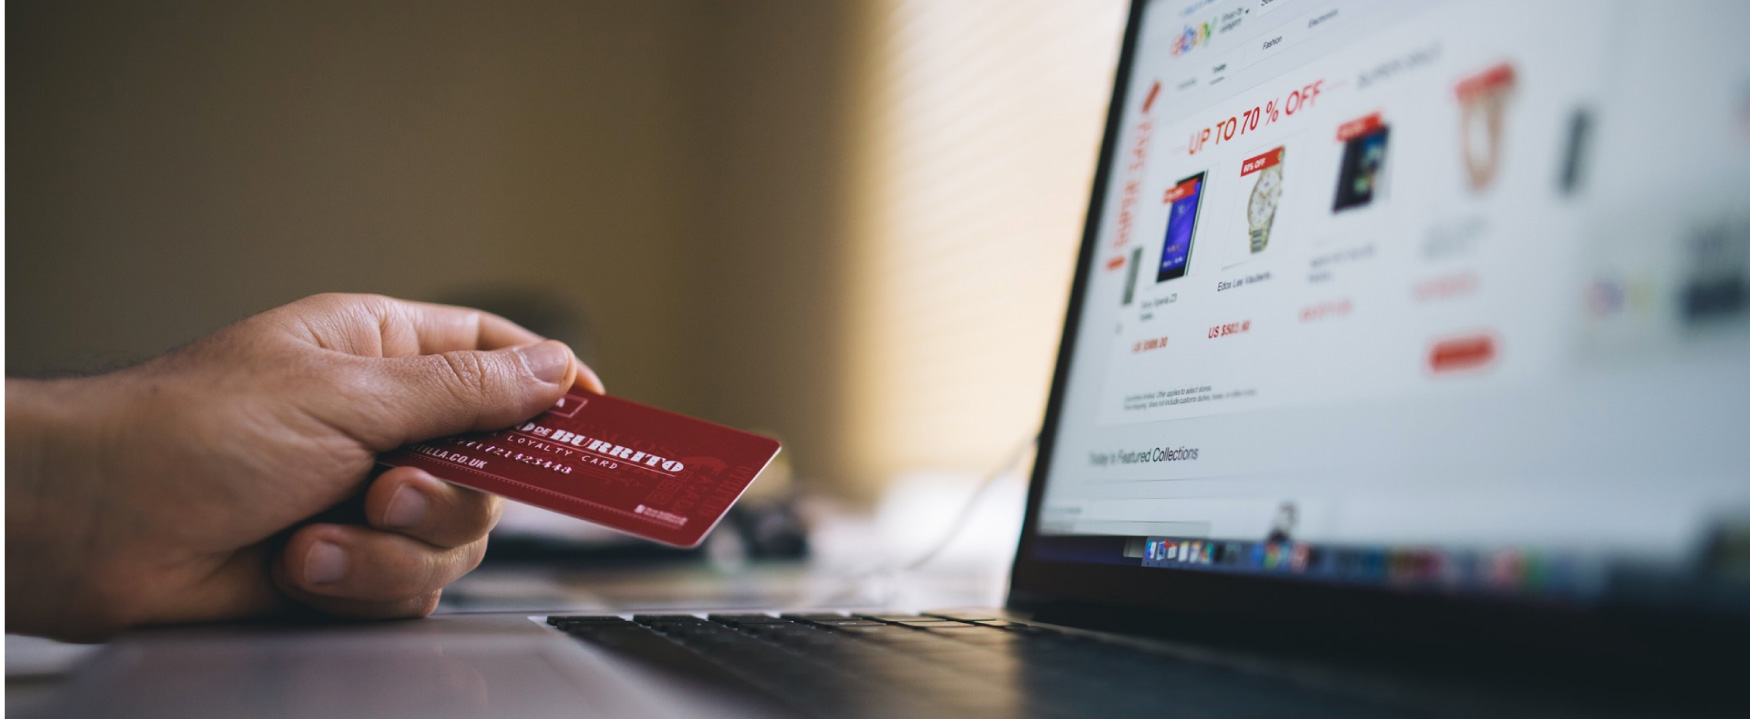 A photograph shows a person sitting at a laptop that is open to e bay. He is holding a member's loyalty credit card in his hand.